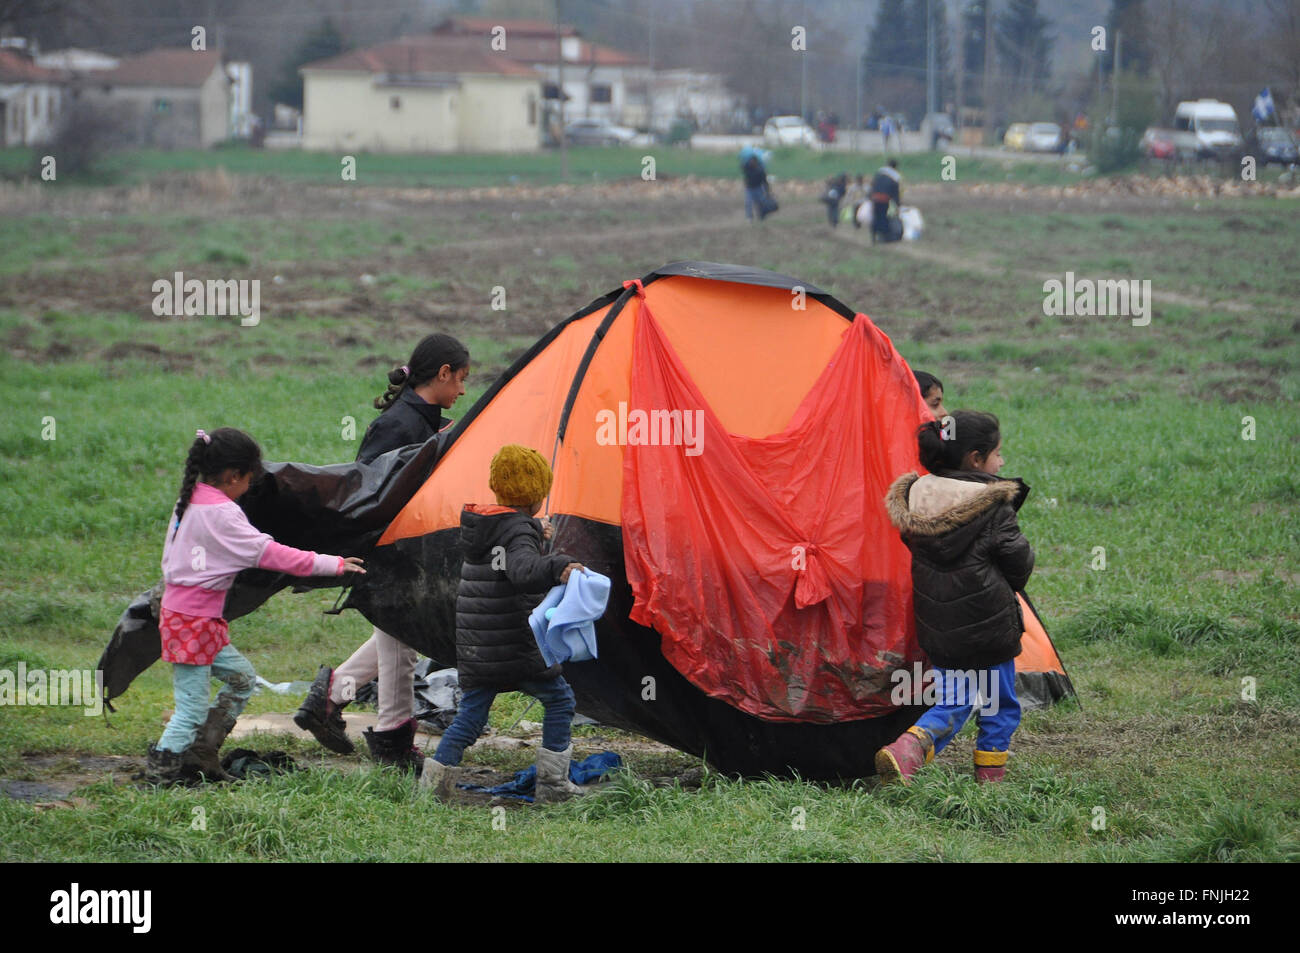 Idomeni, Greece. 14th Mar, 2016. Refugee children move their tent from mud at the Greek-Macedonian border near Idomeni, - Stock Image